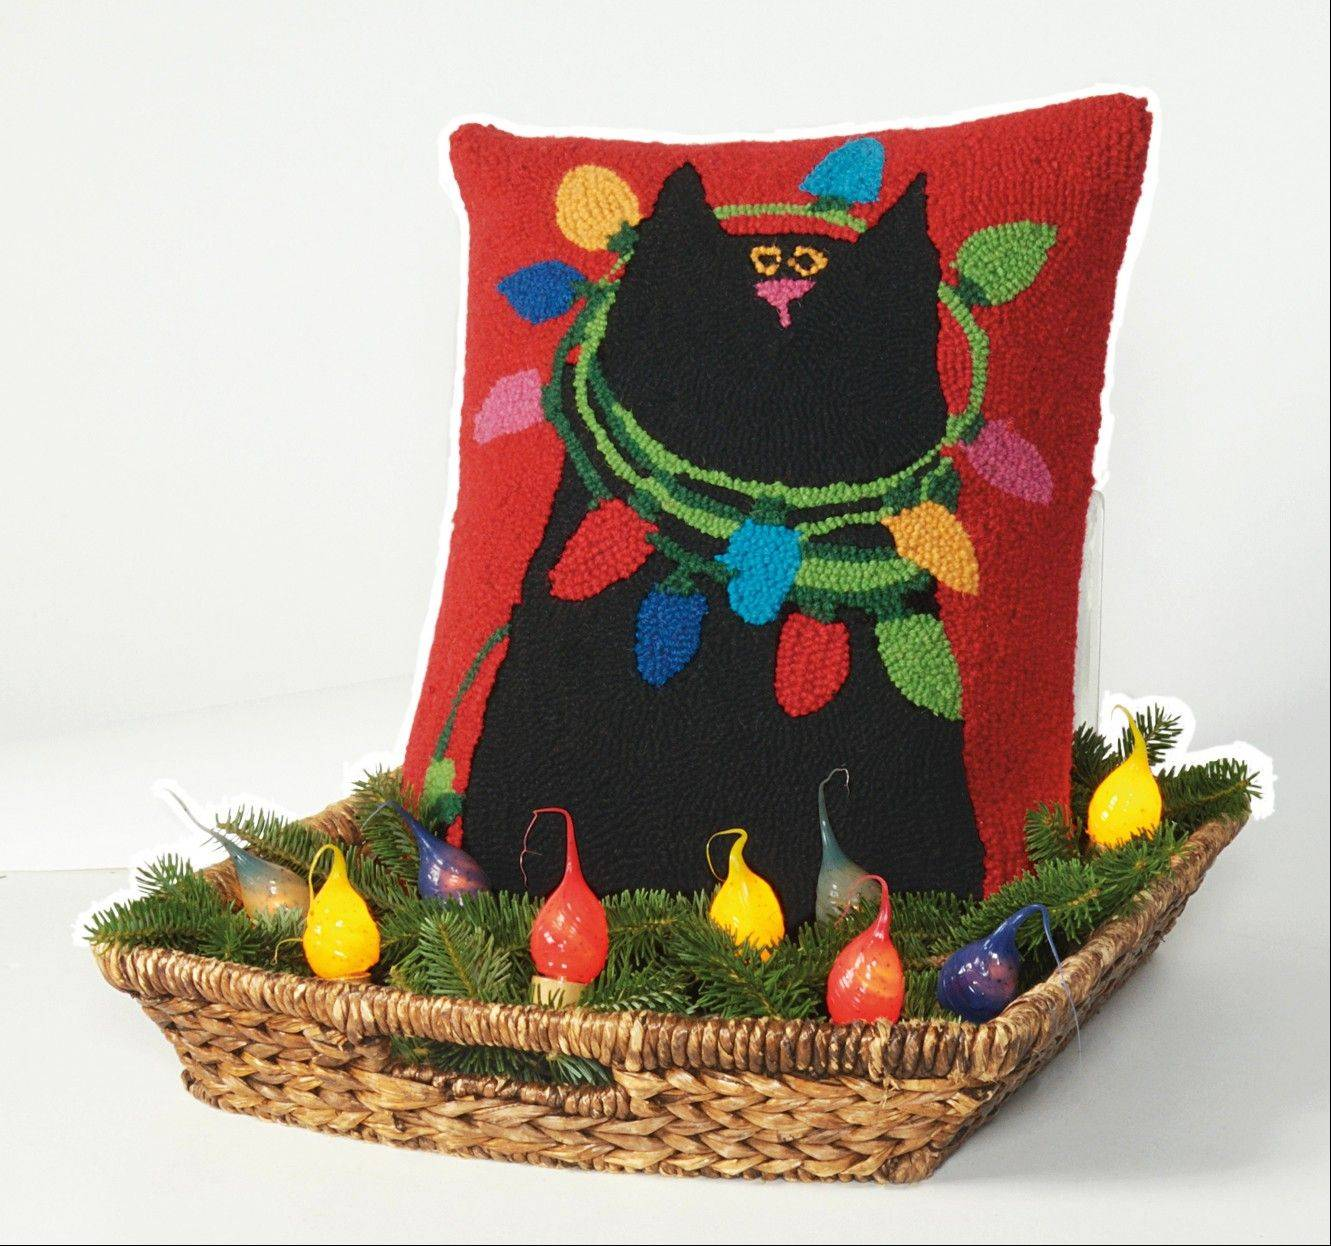 A colorful hooked pillow nestled in a basket of greens makes an easy and unique setting. Place it against a wall or solid surface so the pillow can stand up.